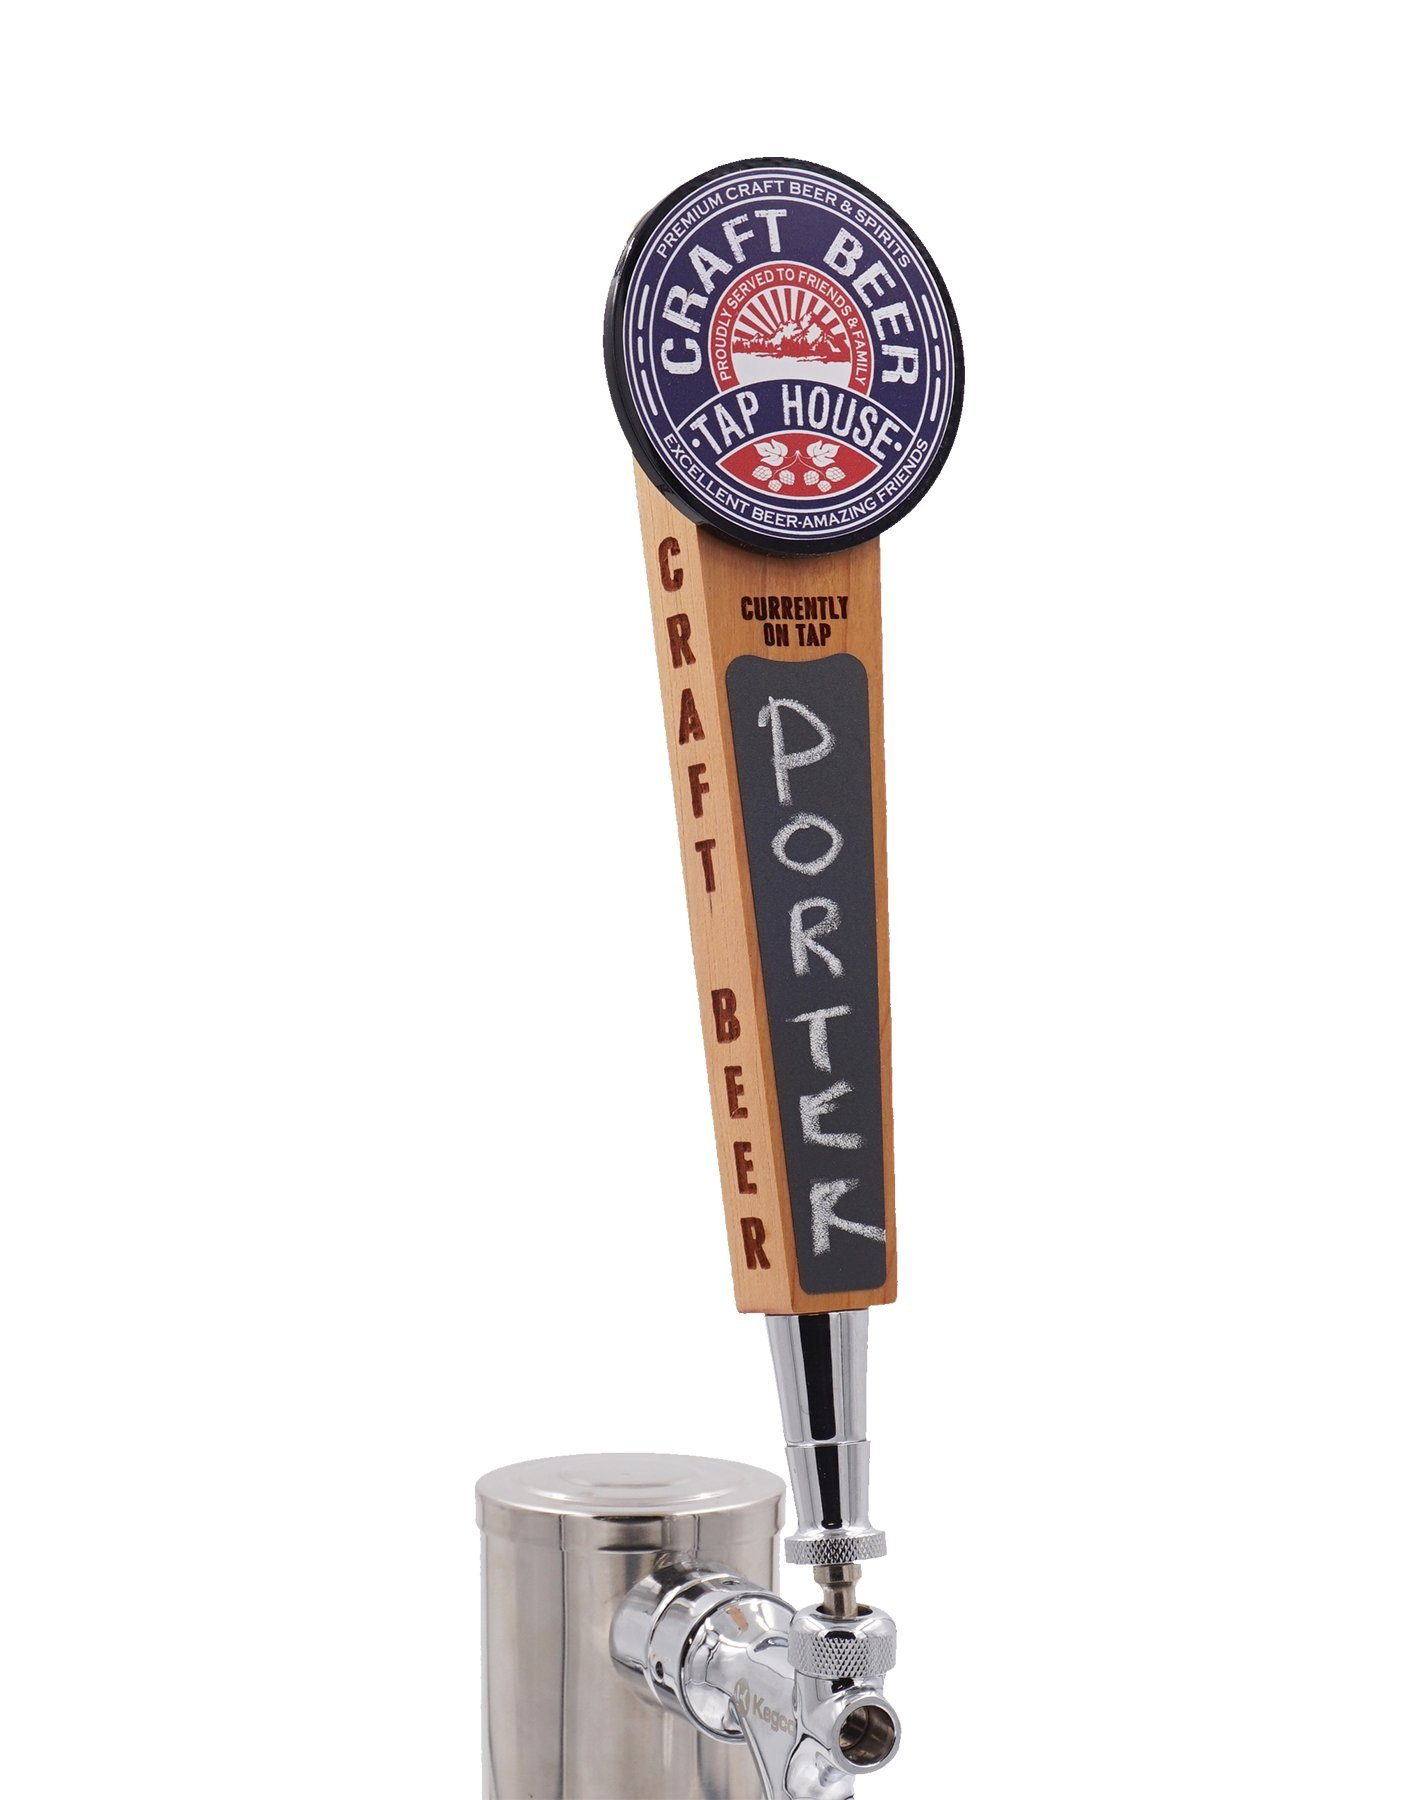 Beer Tap Handle with Chalkboard-Outdoor edition. Cool wood tap with laser engraved sides and full color logo.